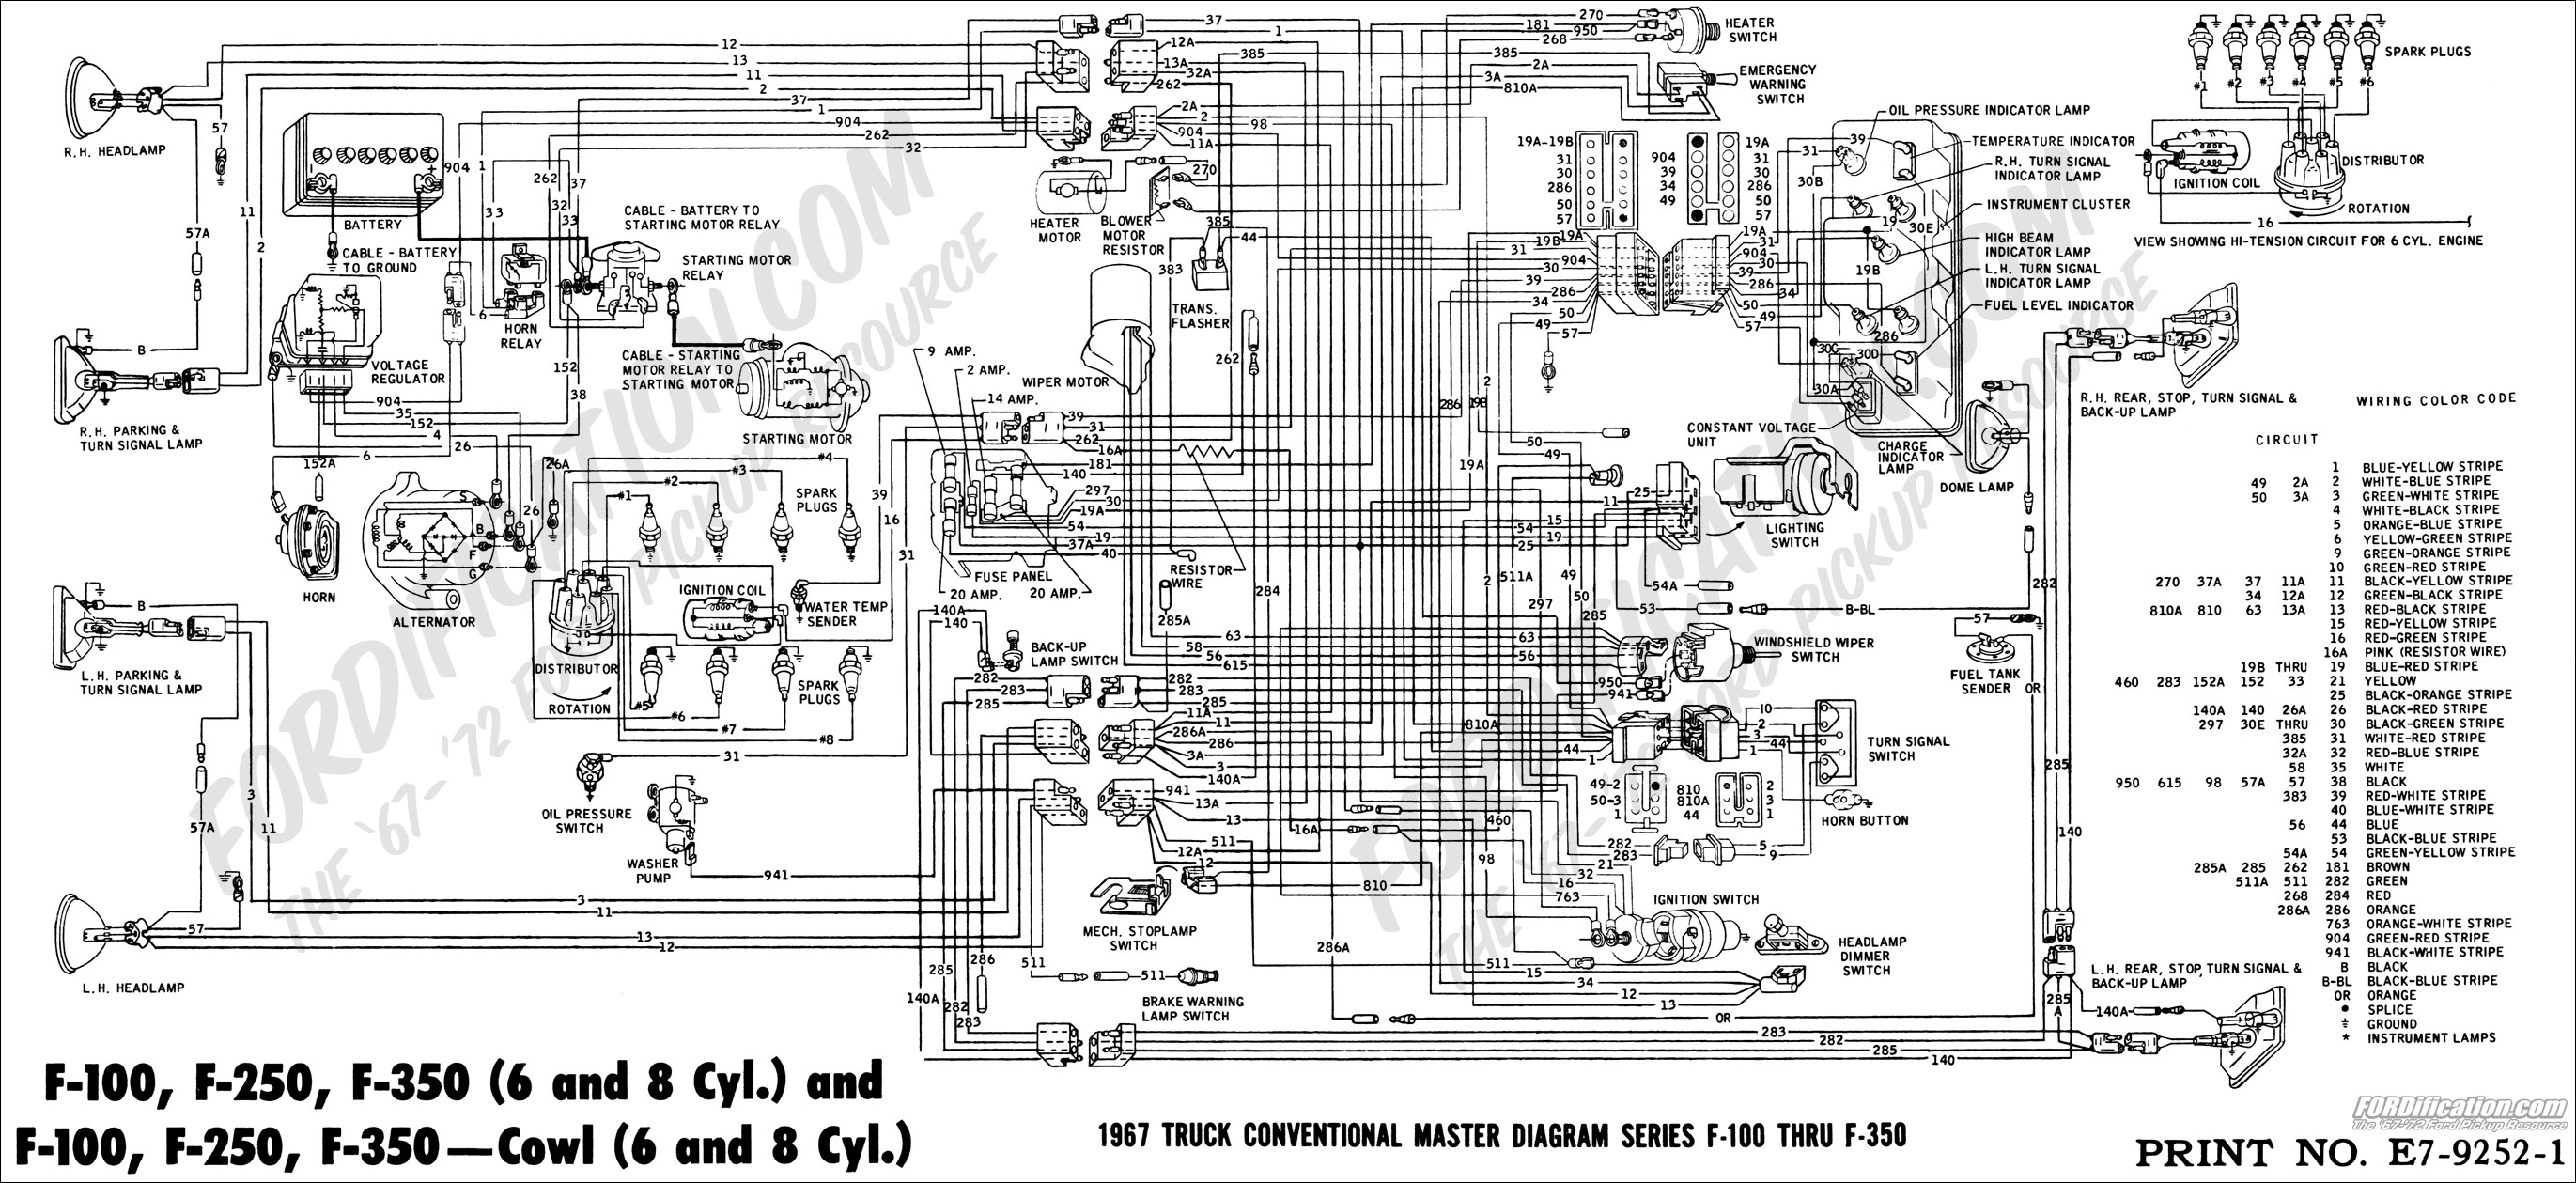 67masterdiagram 1999 ford radio wiring diagram turcolea com 1999 ford f350 radio wiring diagram at pacquiaovsvargaslive.co